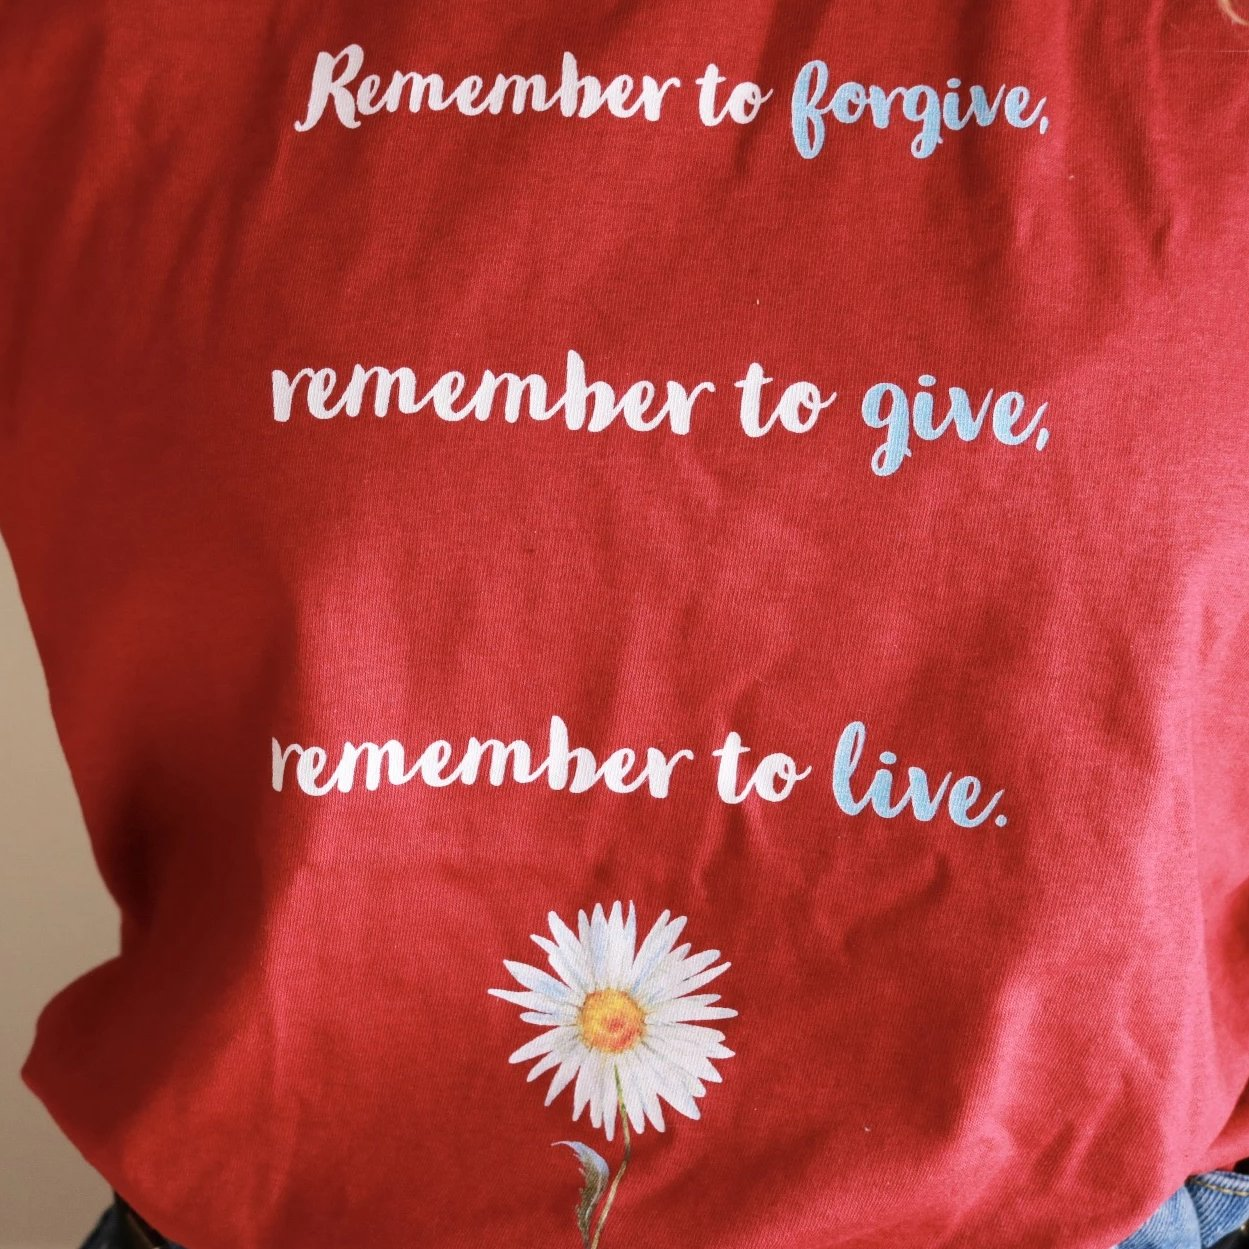 Remember to forgive, give and live tee